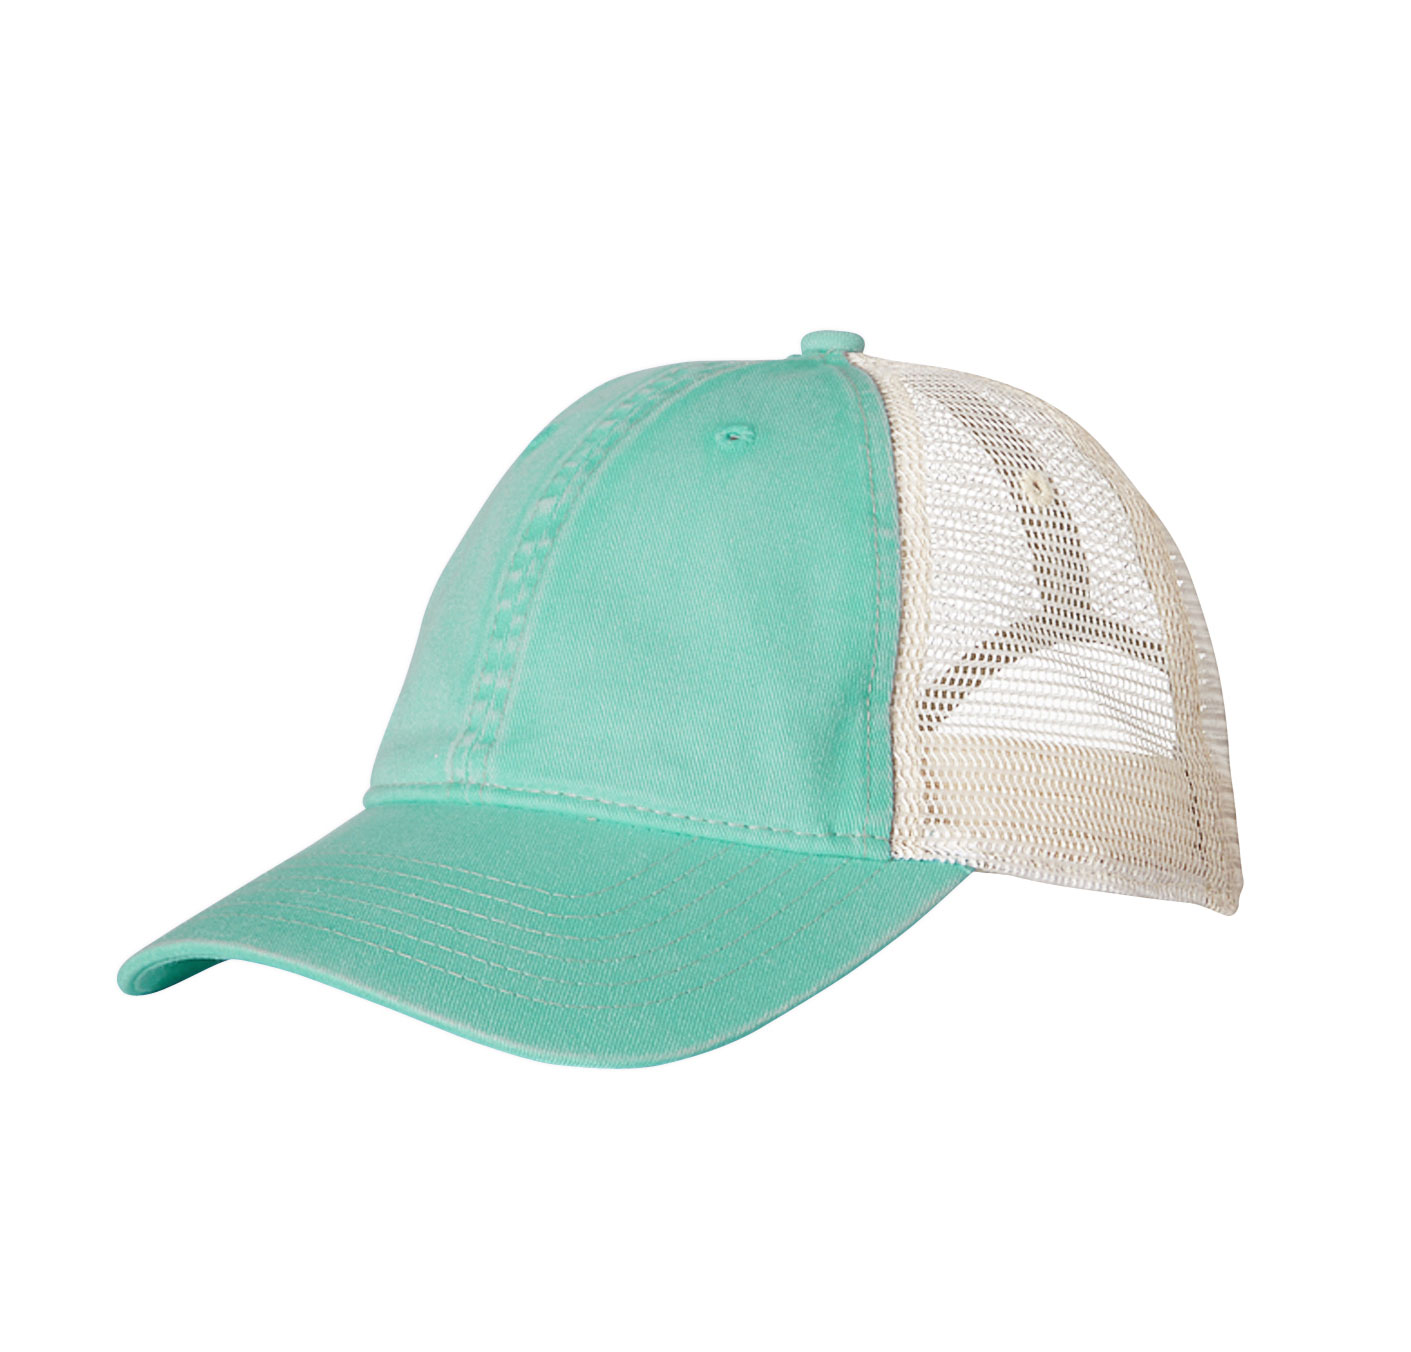 Design Comfort Colors Trucker Cap 40a2d6f41284